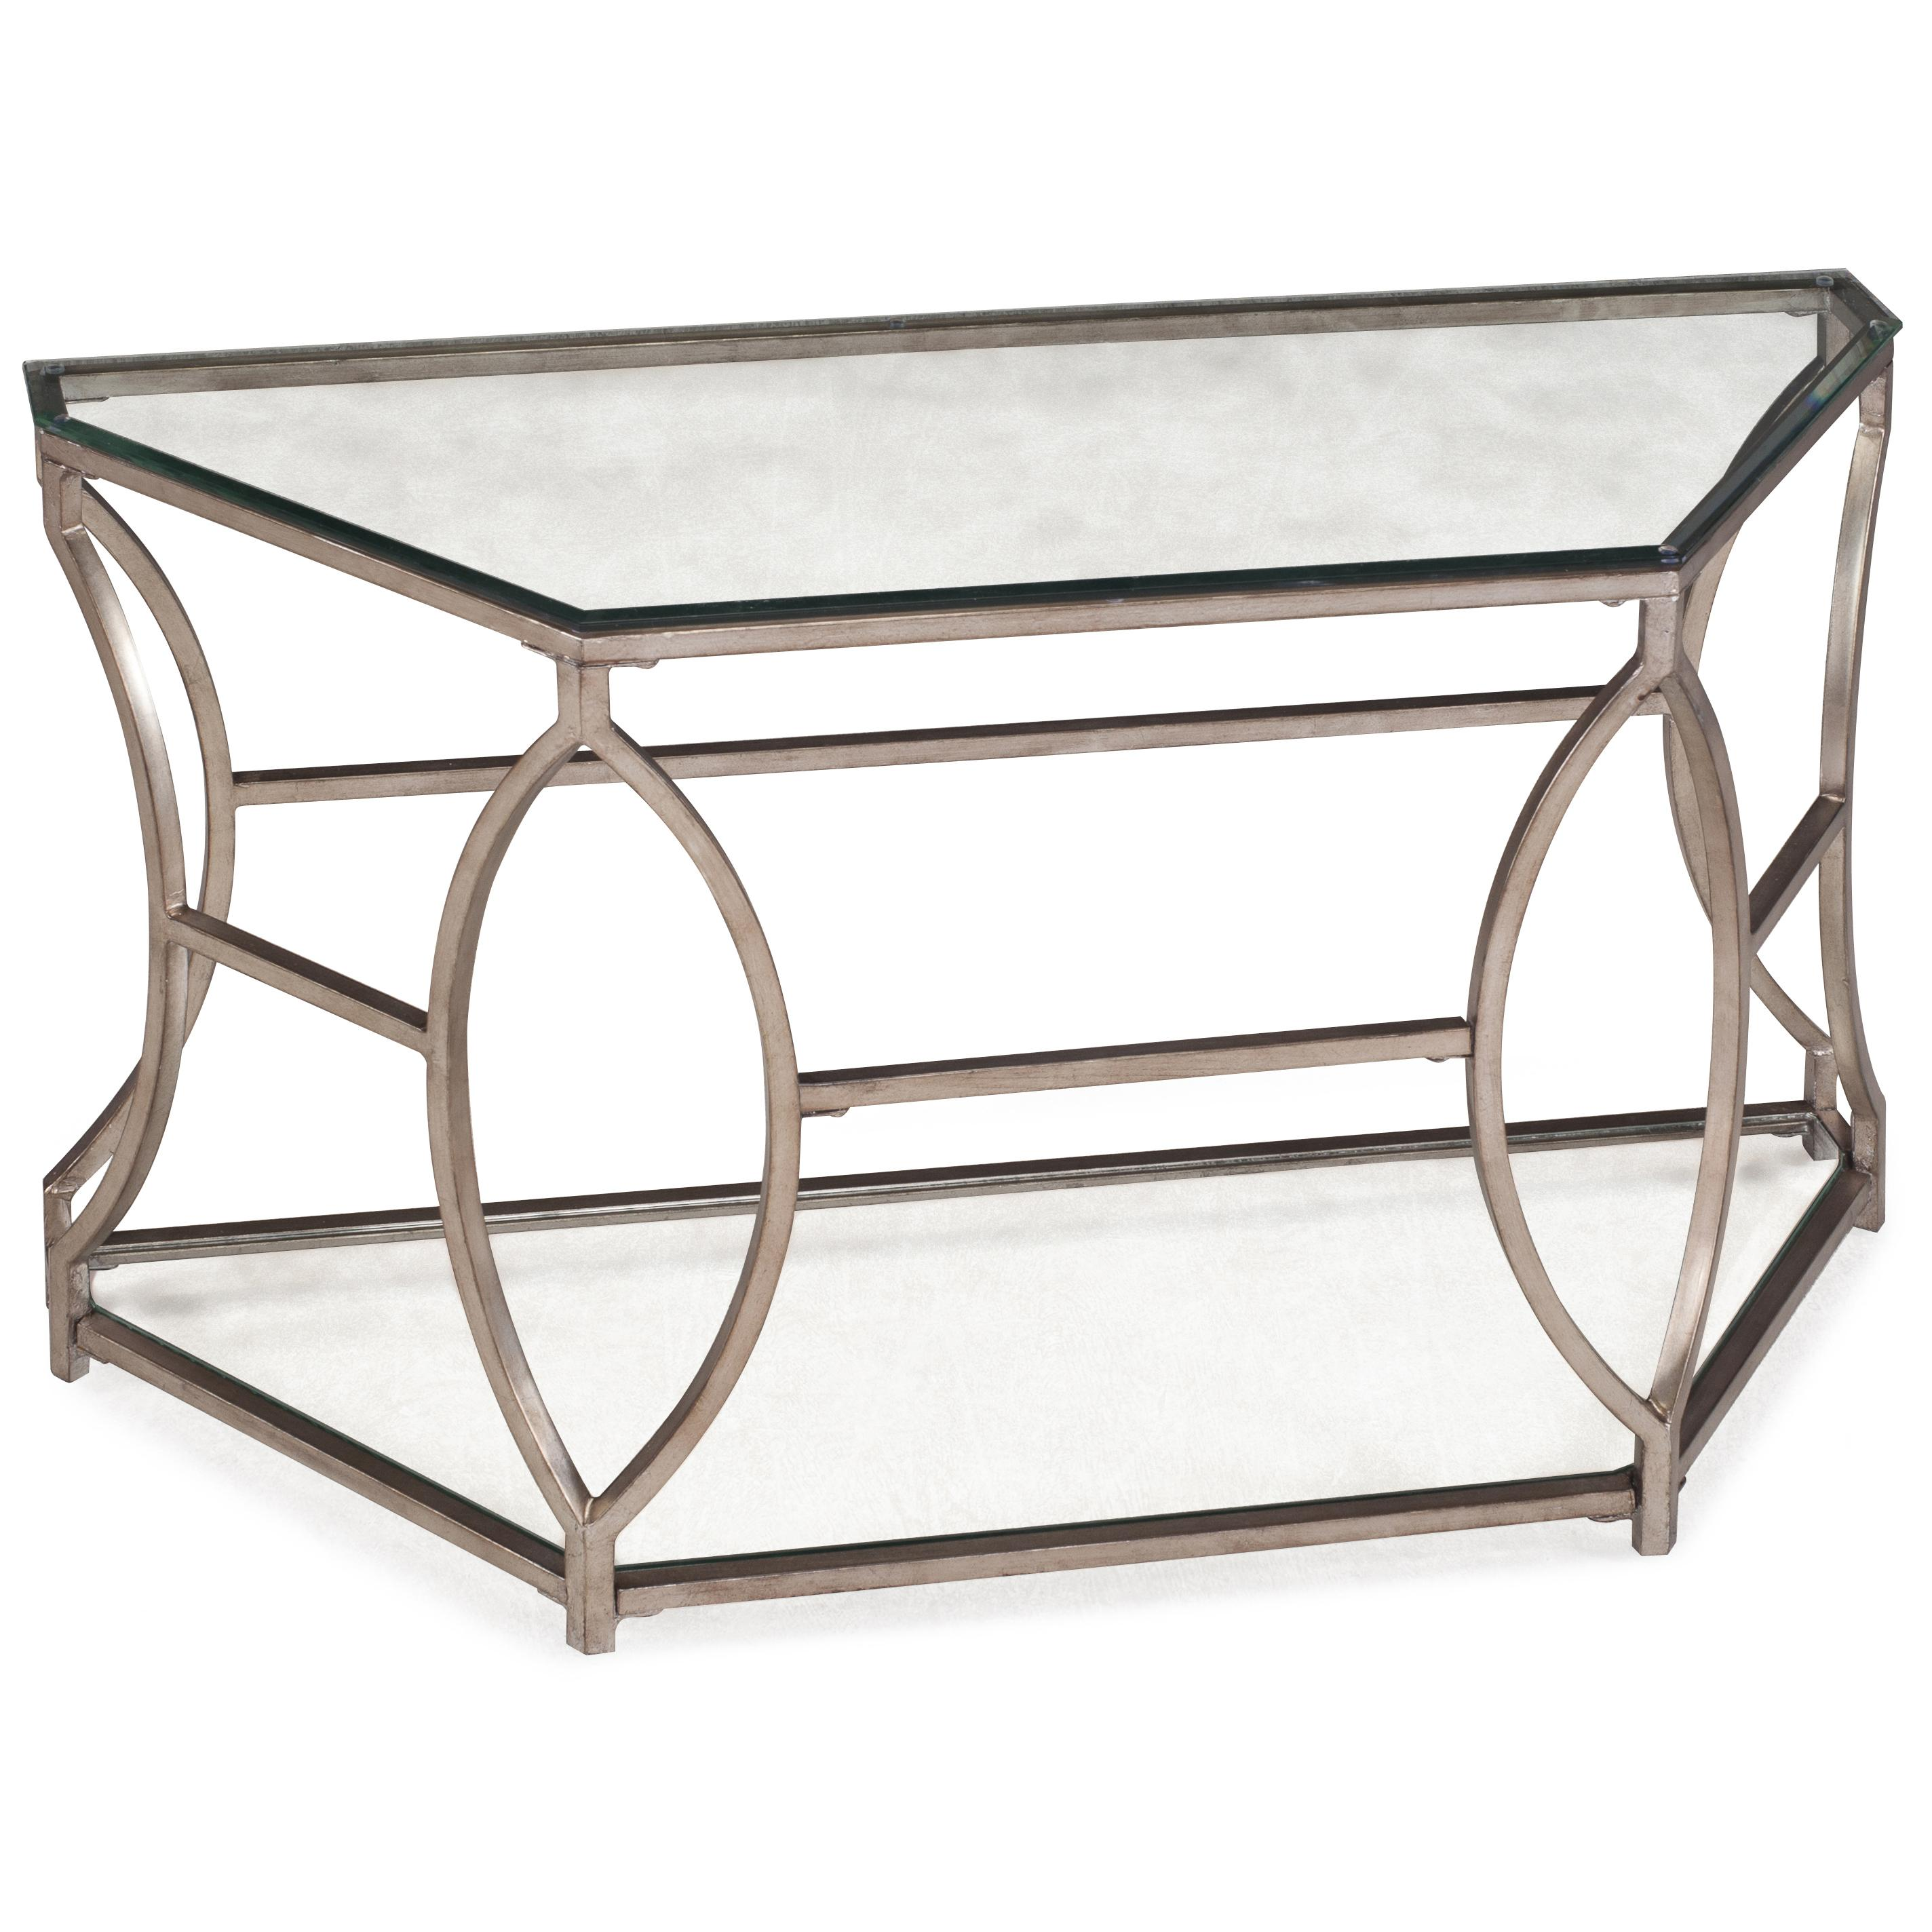 Magnussen Home Nevelson Demilune Sofa Table - Item Number: T2060-75B+75T